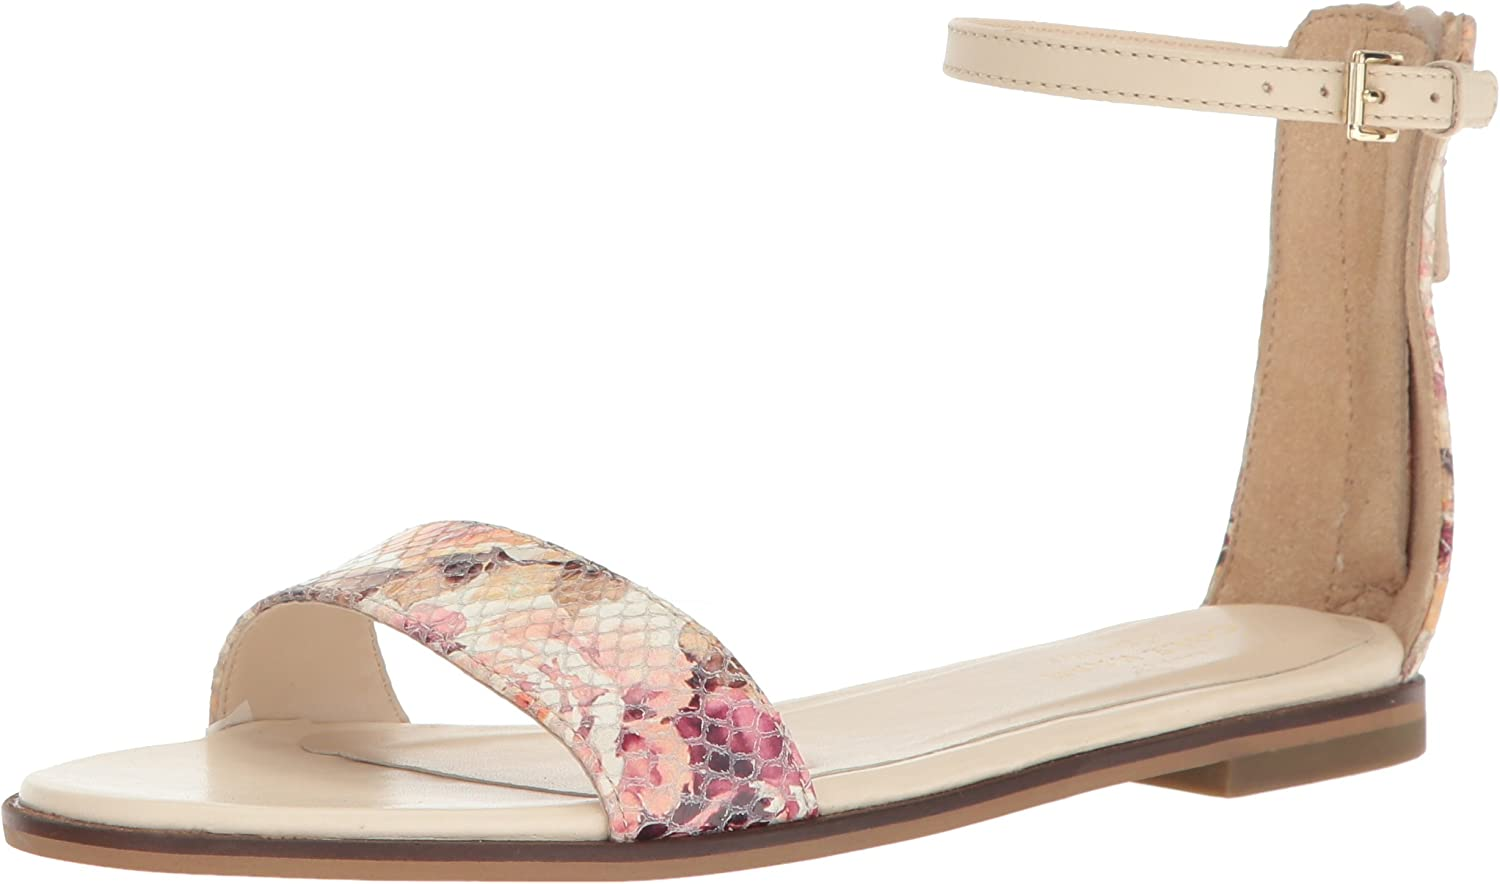 Cole Haan Womens Bayleen Sandal Ii Dress Sandal